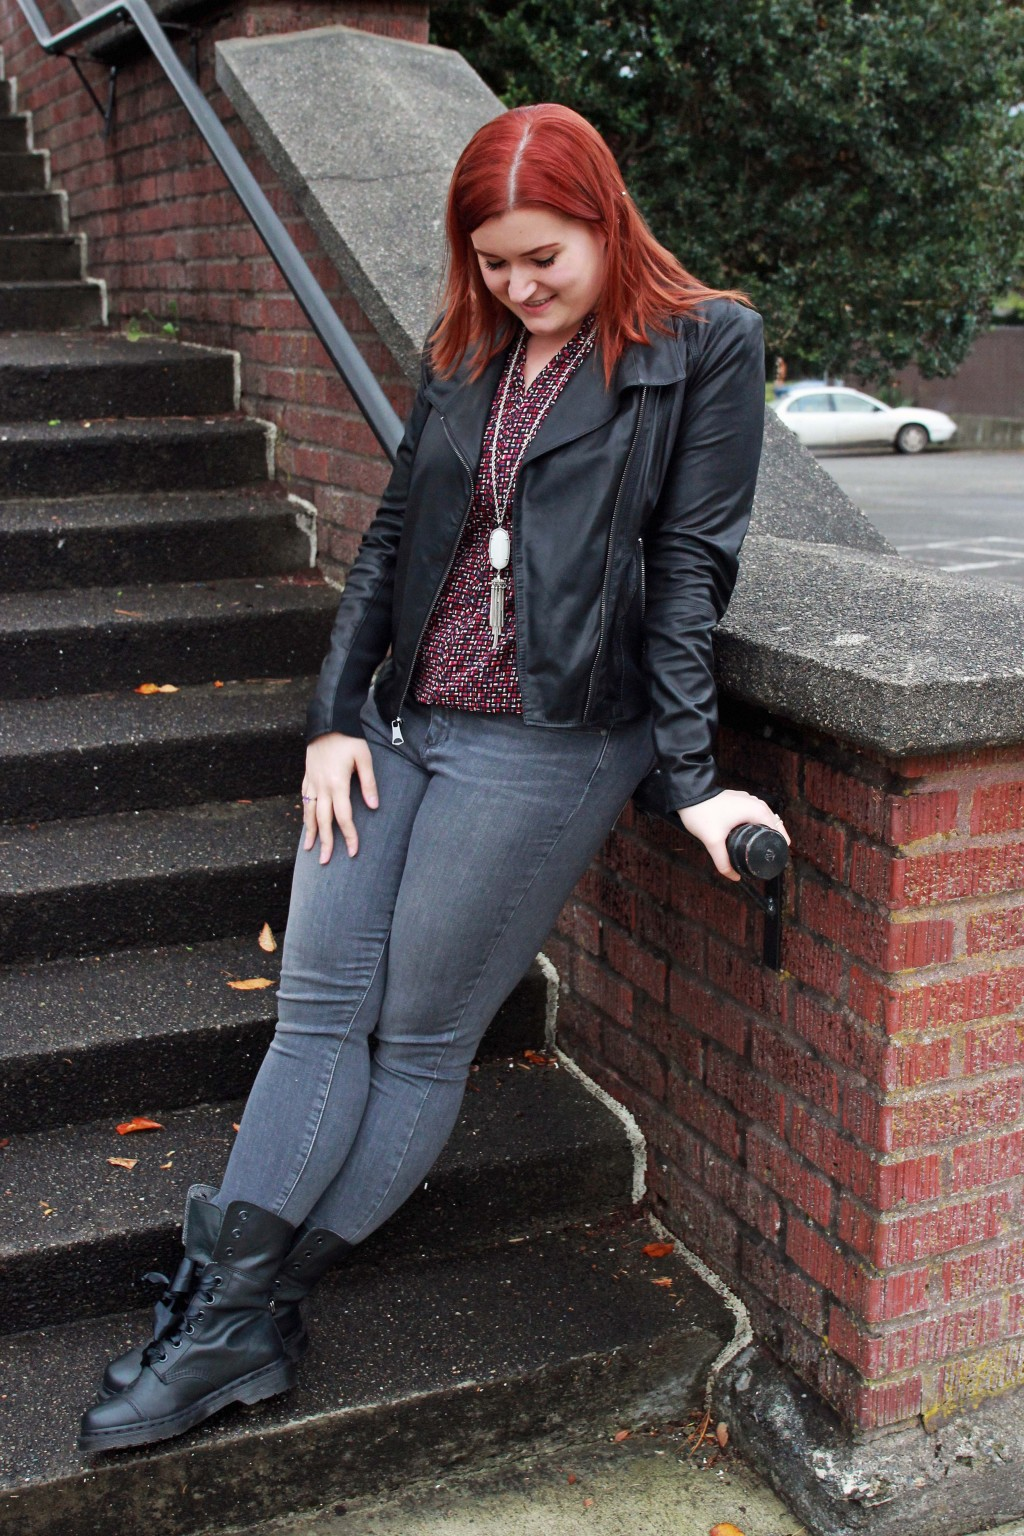 Black Leather Jacket and gray jeans style inspiration